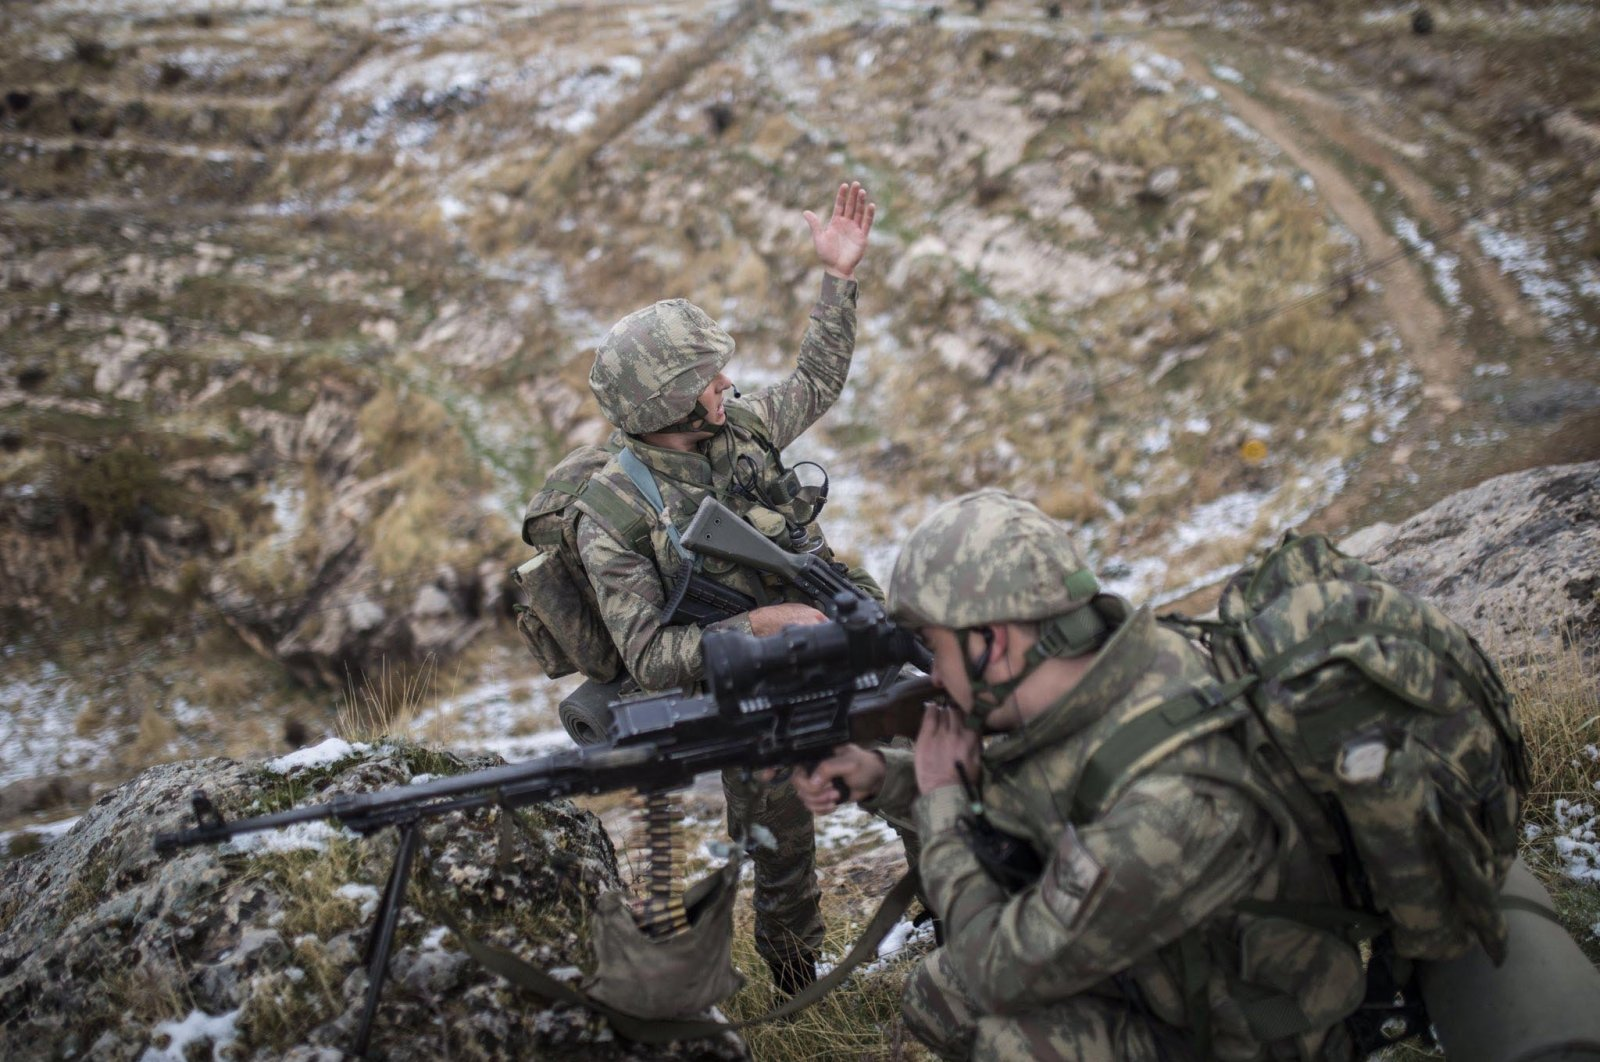 Turkish soldiers take part in a counterterrorism operation against PKK terrorists in the Metina region in northern Iraq. (DHA File Photo)